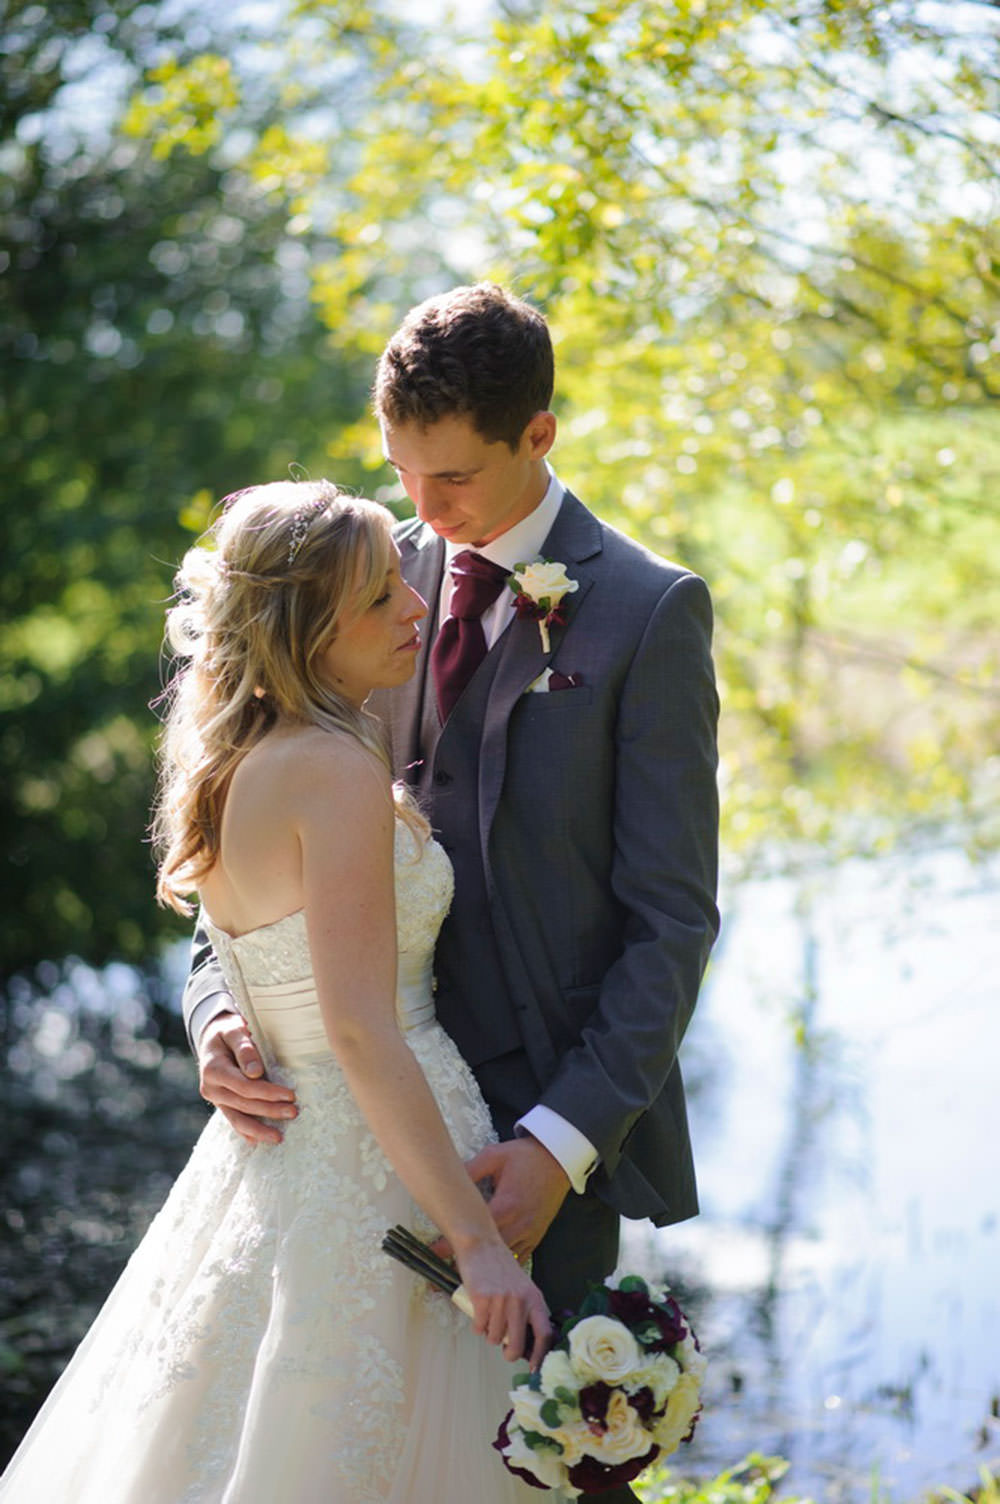 ali-gaudion-wedding-photographer-chichester-skylark-golf-country-club-hampshire-014